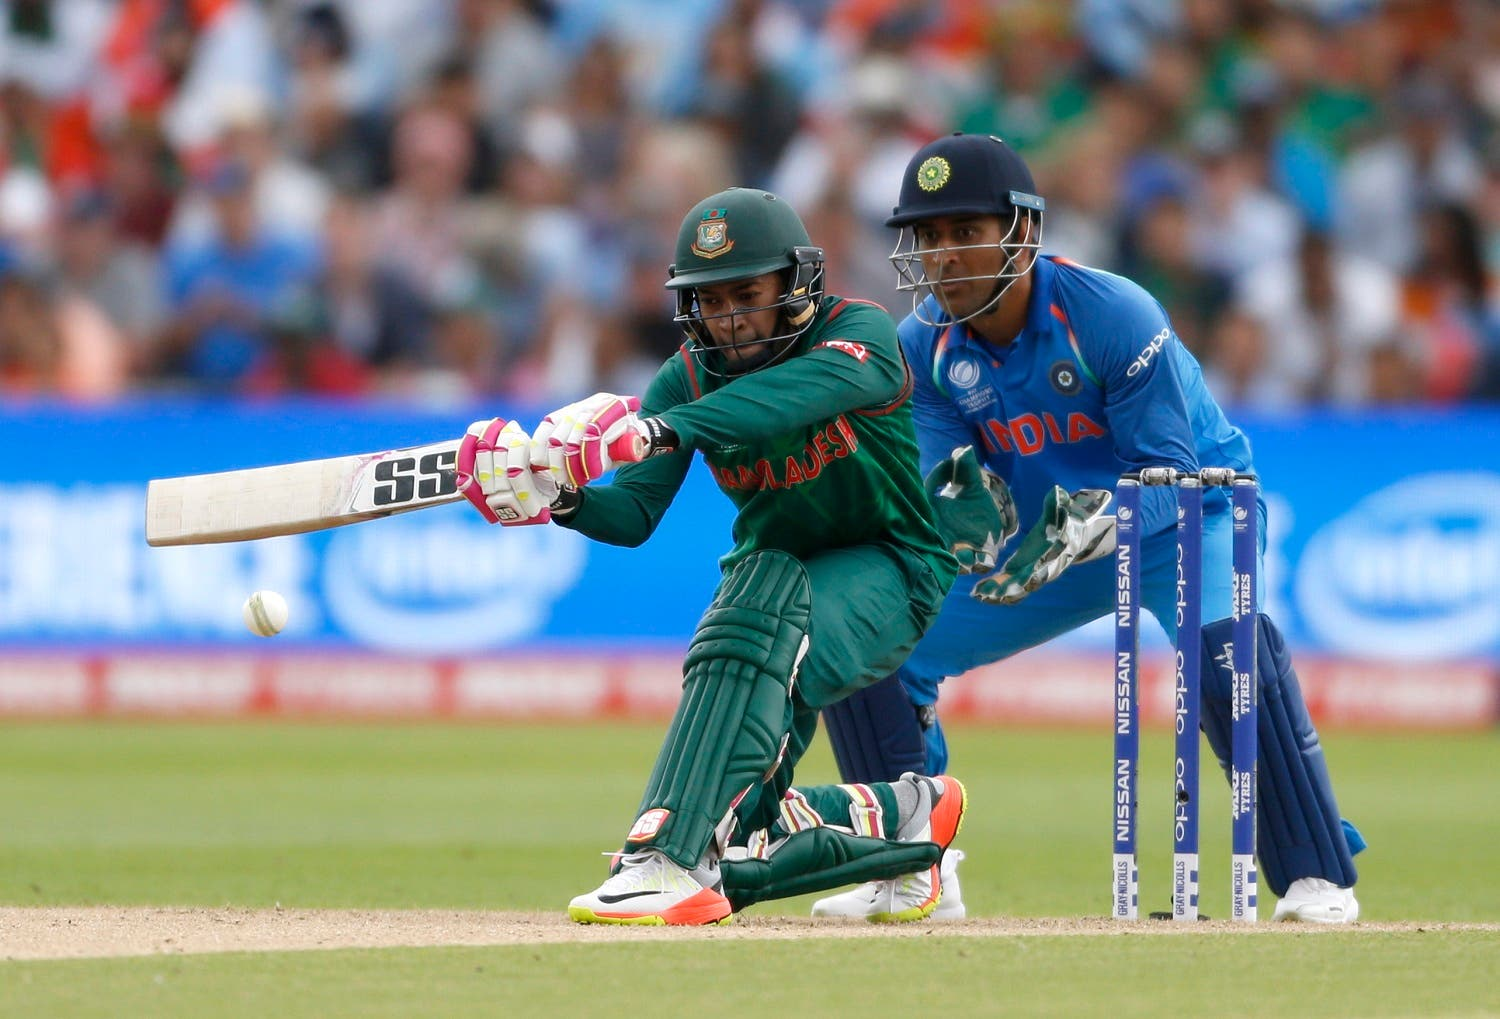 Bangladesh's Mushfiqur Rahim in action in the  India v Bangladesh - 2017 ICC Champions Trophy semi-final at Edgbaston on Thursday, June 15, 2017. (Reuters)